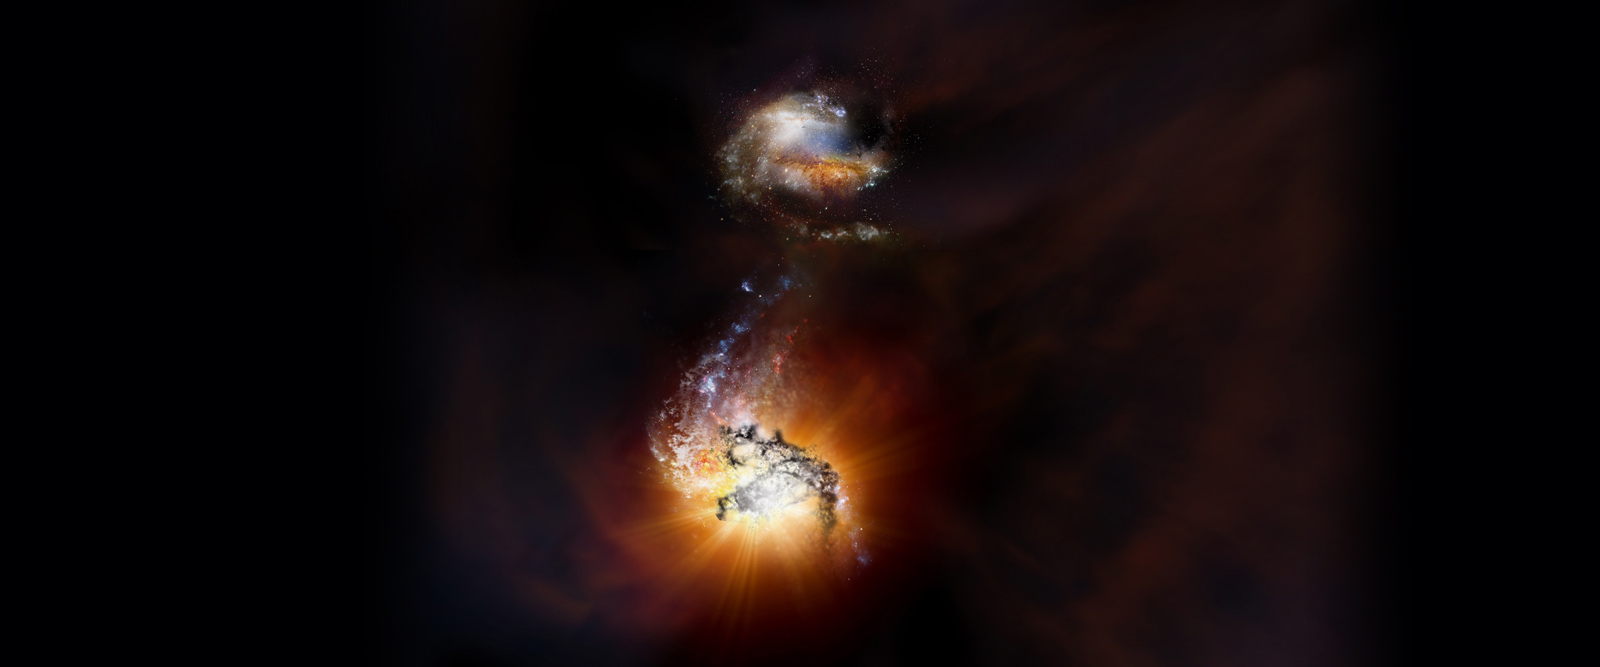 Cosmic traffic accident in the early universe